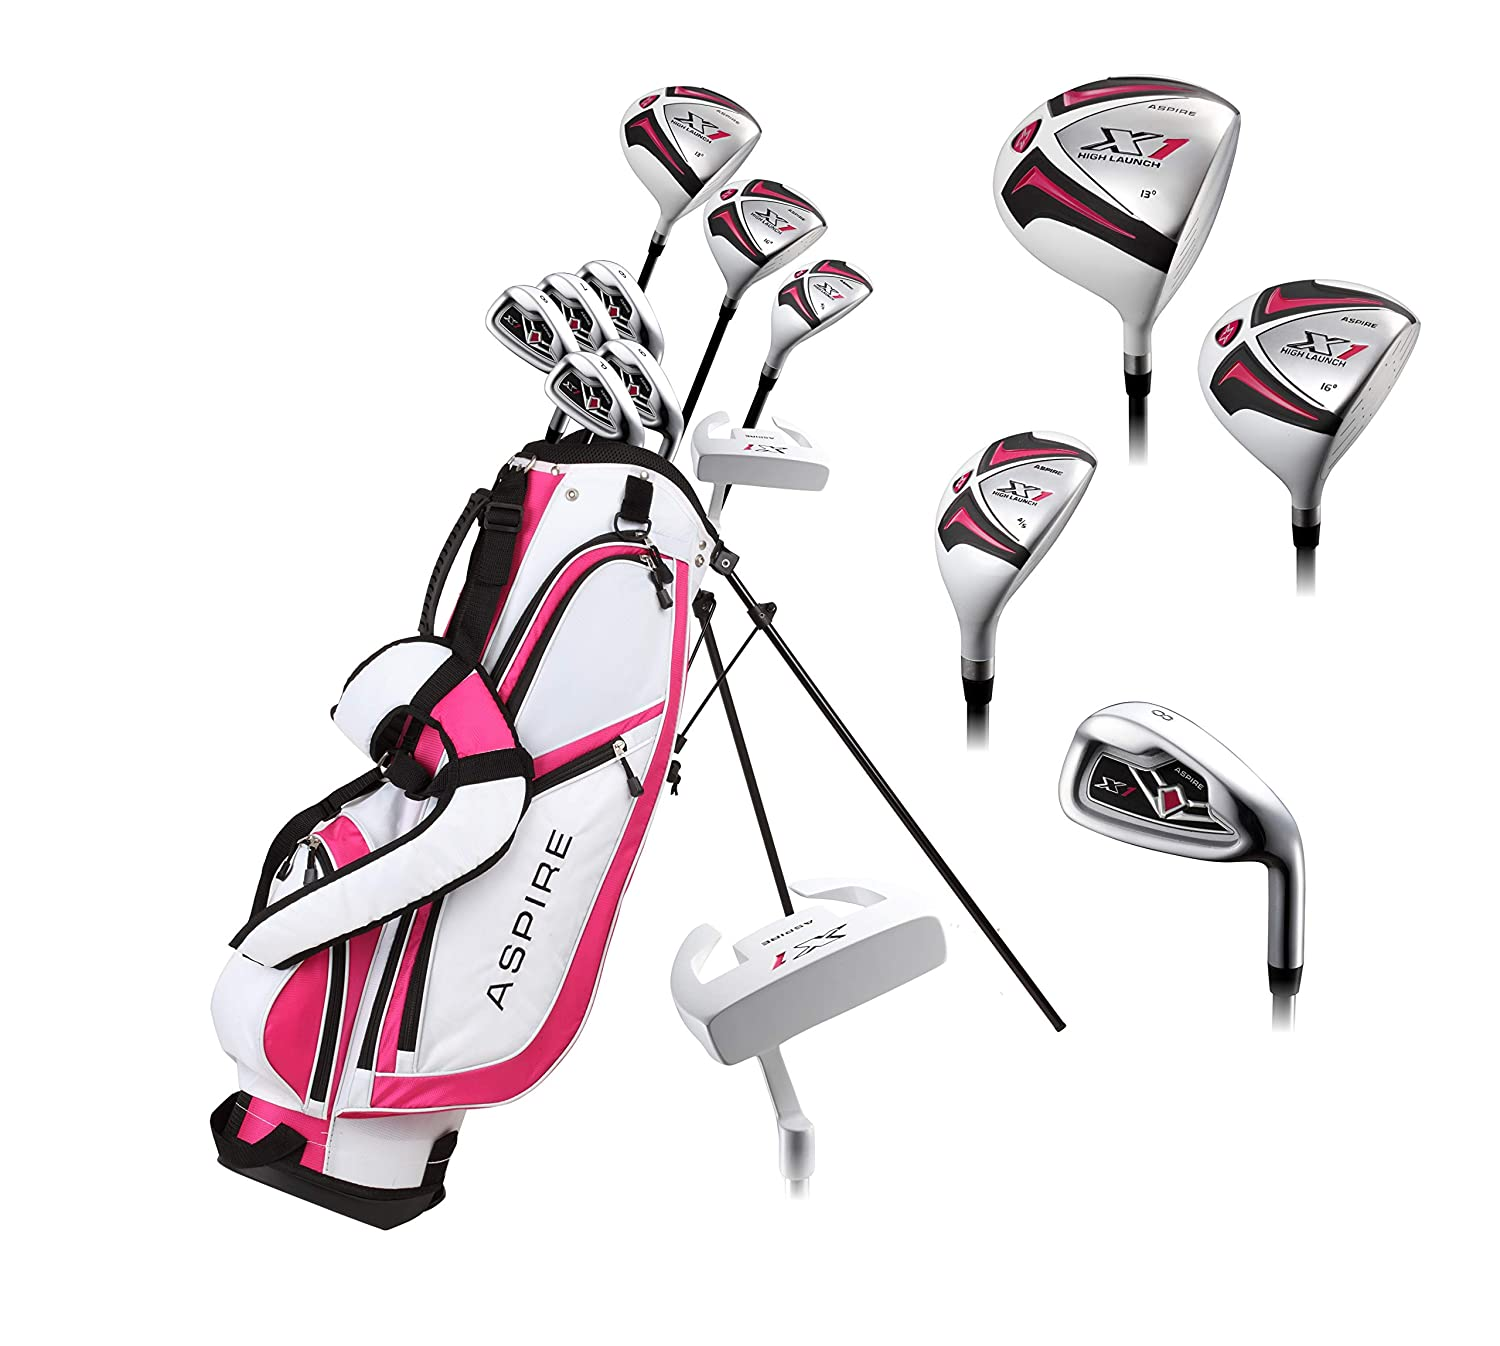 Aspire X1 Ladies Womens Complete Right Handed Golf Clubs Set Includes Driver, Fairway, Hybrid, 6-PW Irons, Putter, Stand Bag, 3 H C s Cherry Pink Petite Size for Ladies 5 3 and Below